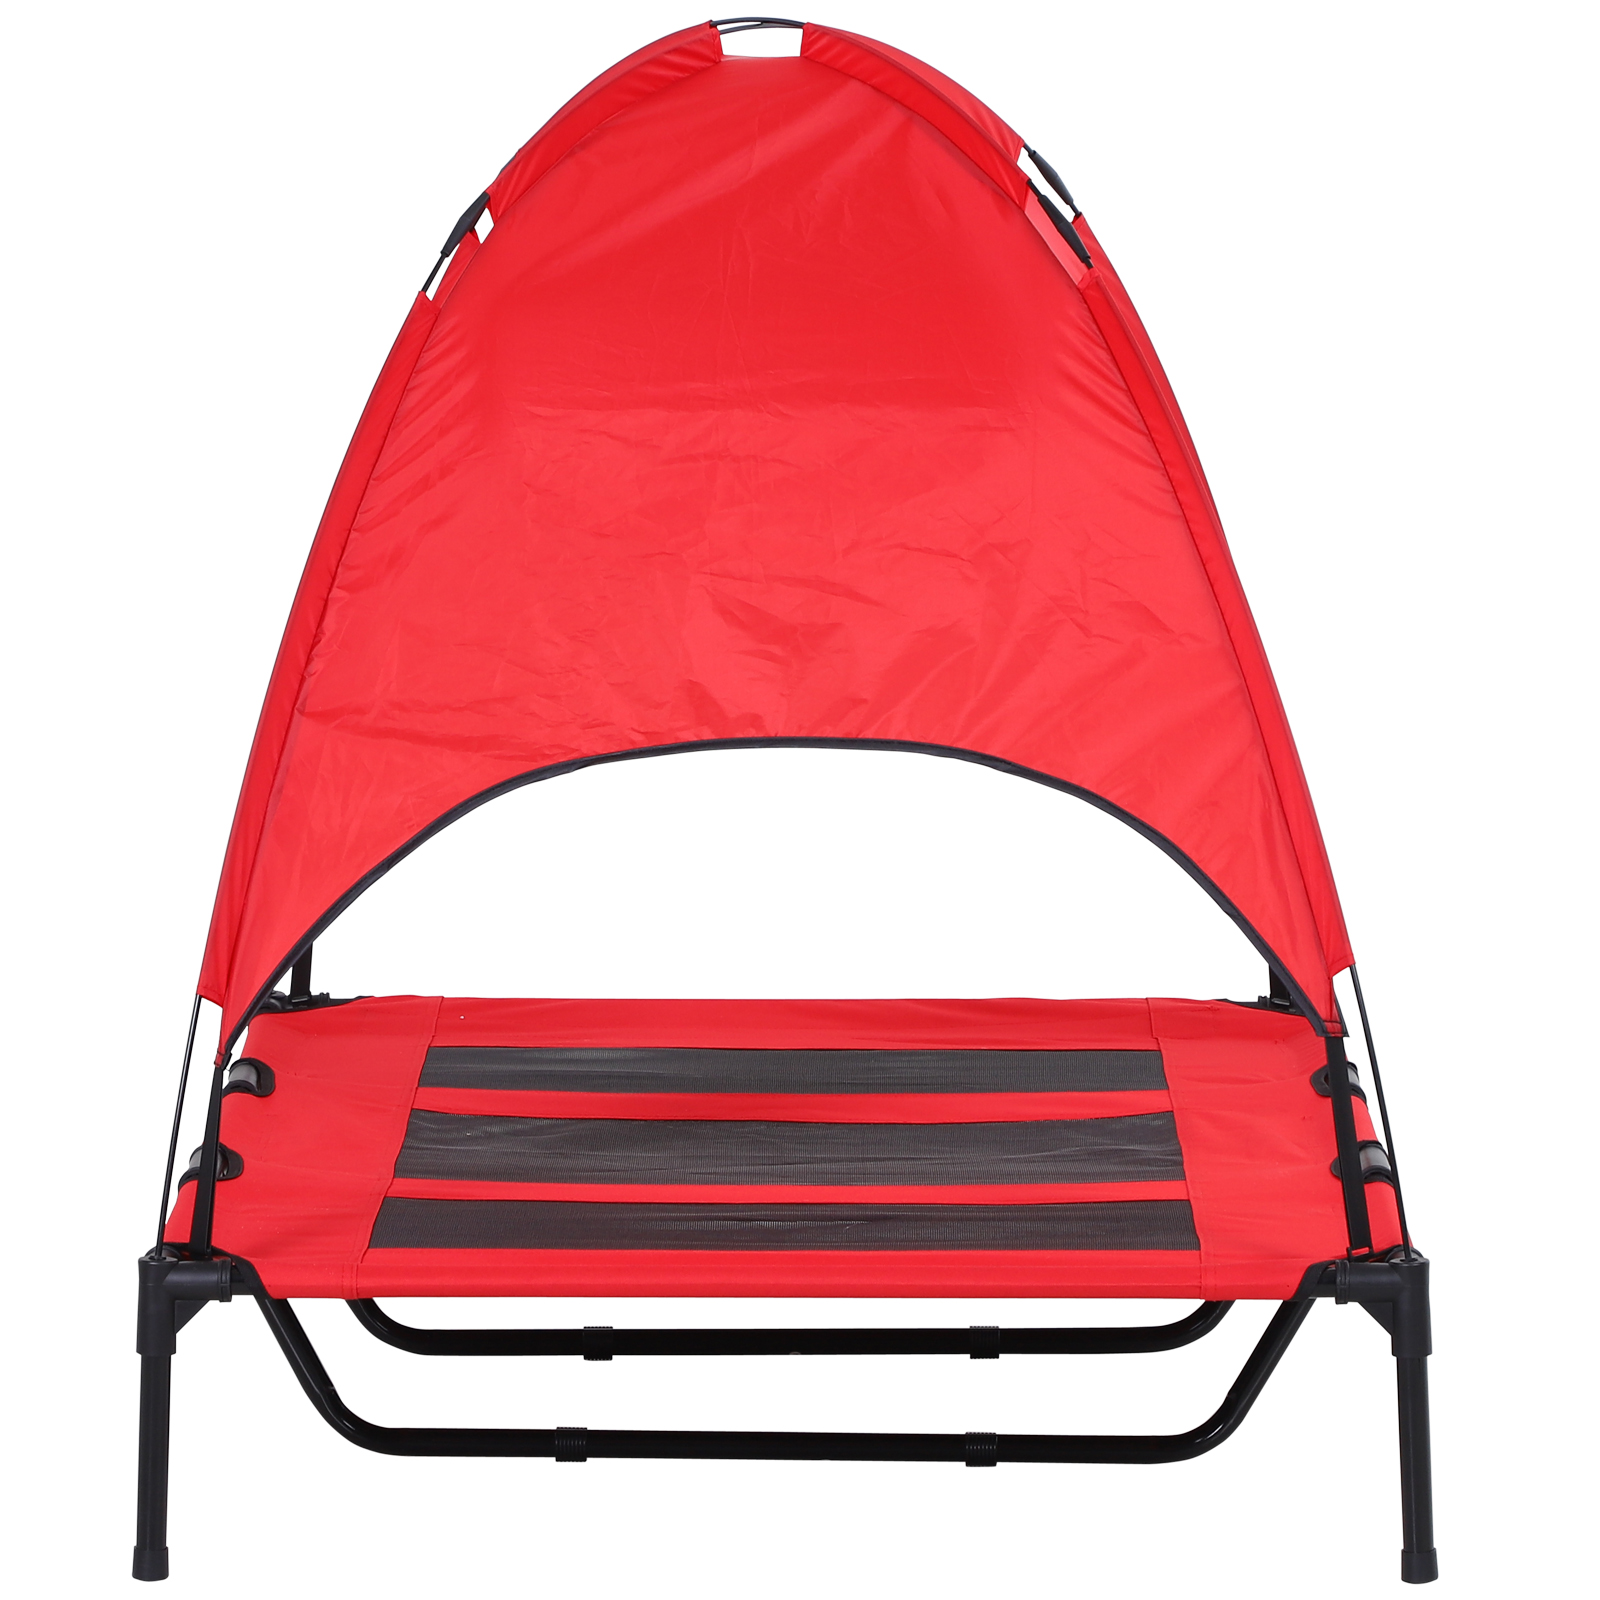 PawHut-Elevated-Pet-Bed-Dog-Foldable-Cot-Tent-Canopy thumbnail 21